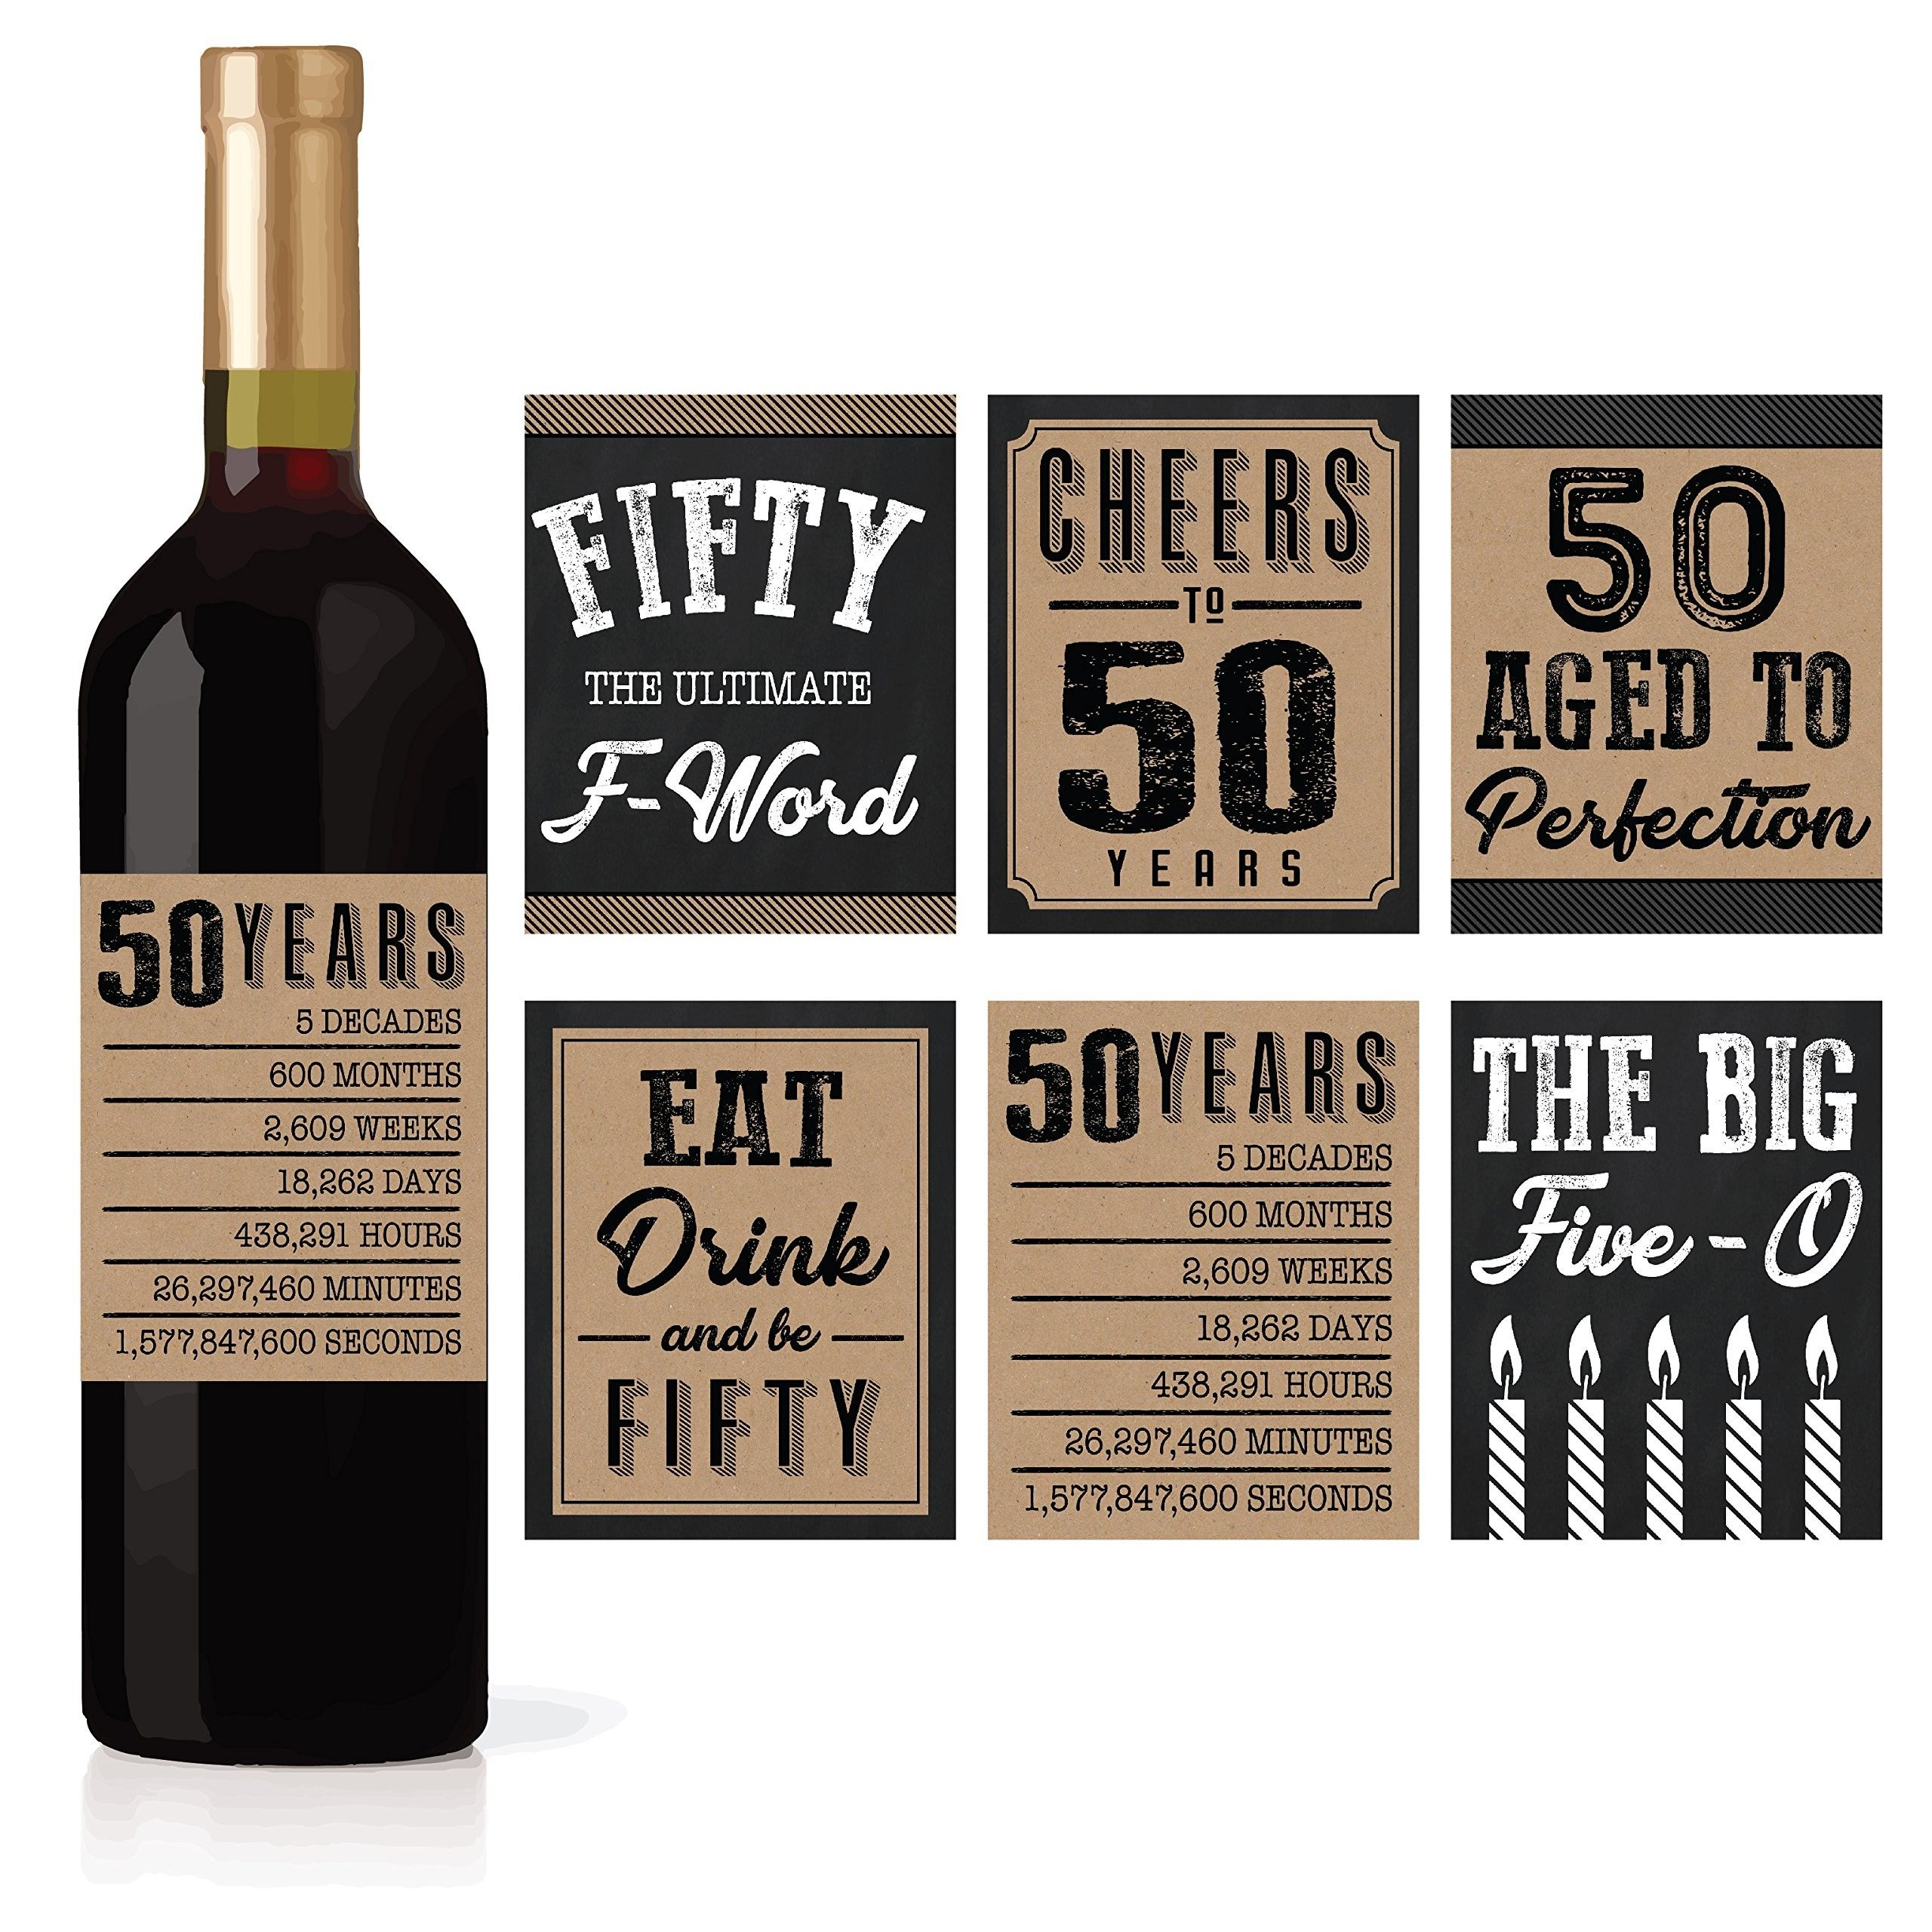 photo about Free Printable Wine Labels With Photo named Totally free Printable Wine Labels for Birthday Amazon 50th Birthday